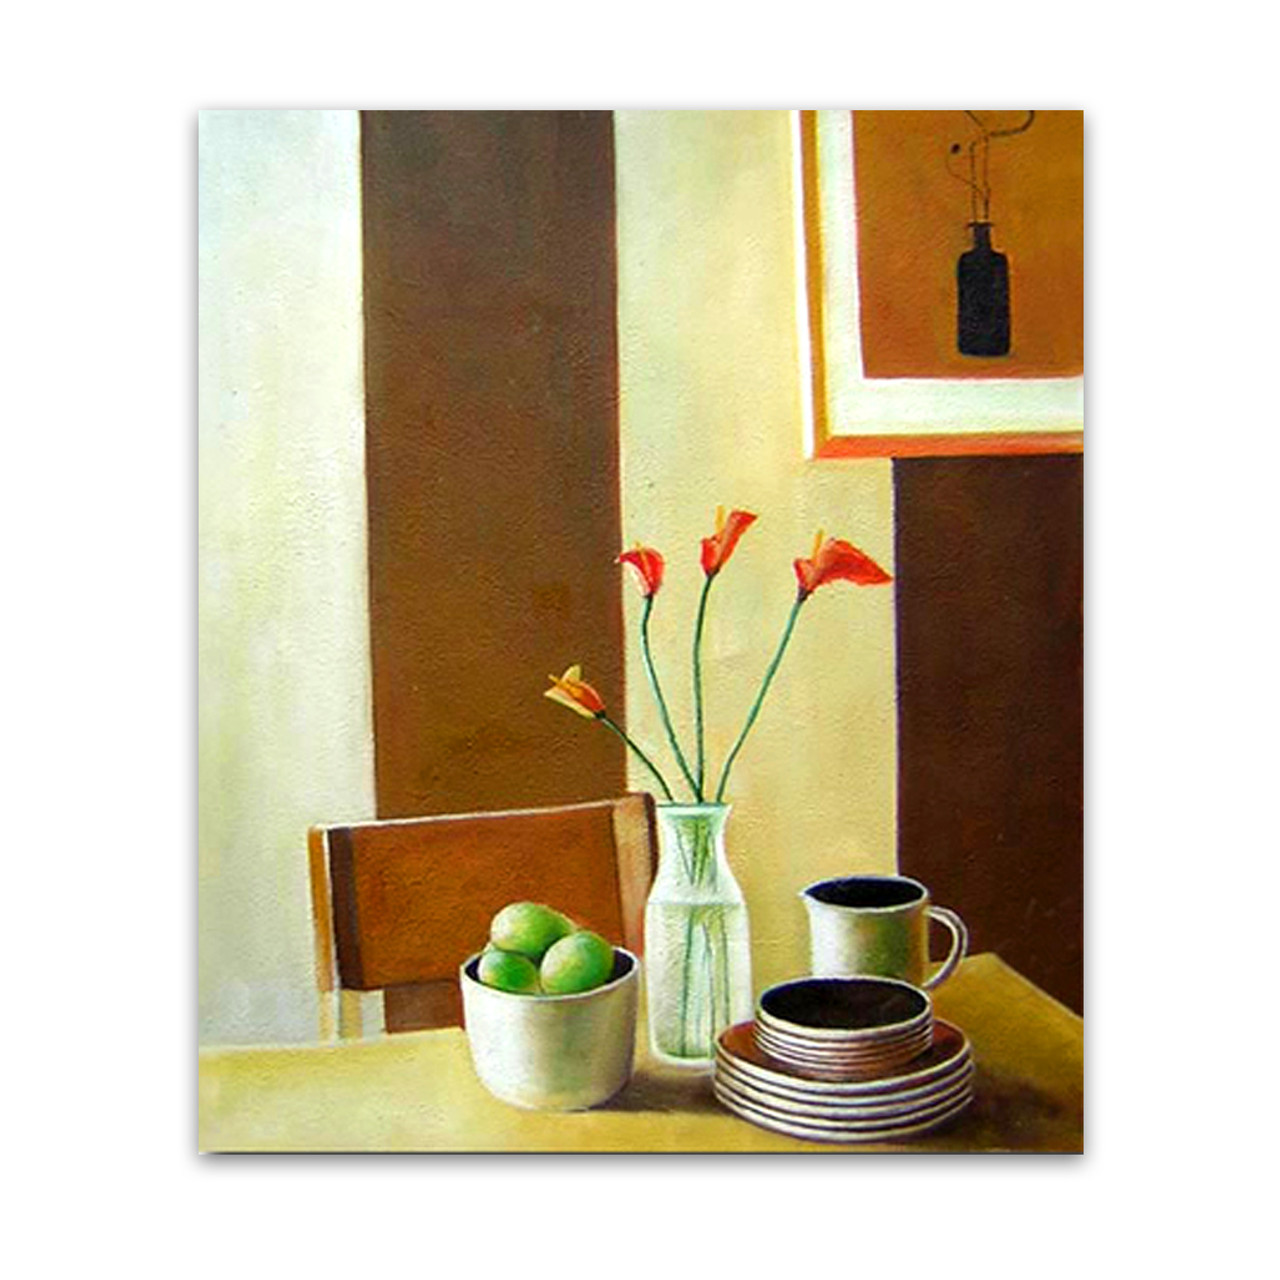 Kitchen Art Australia: Home Design Styles And Big Canvas Art For Sale